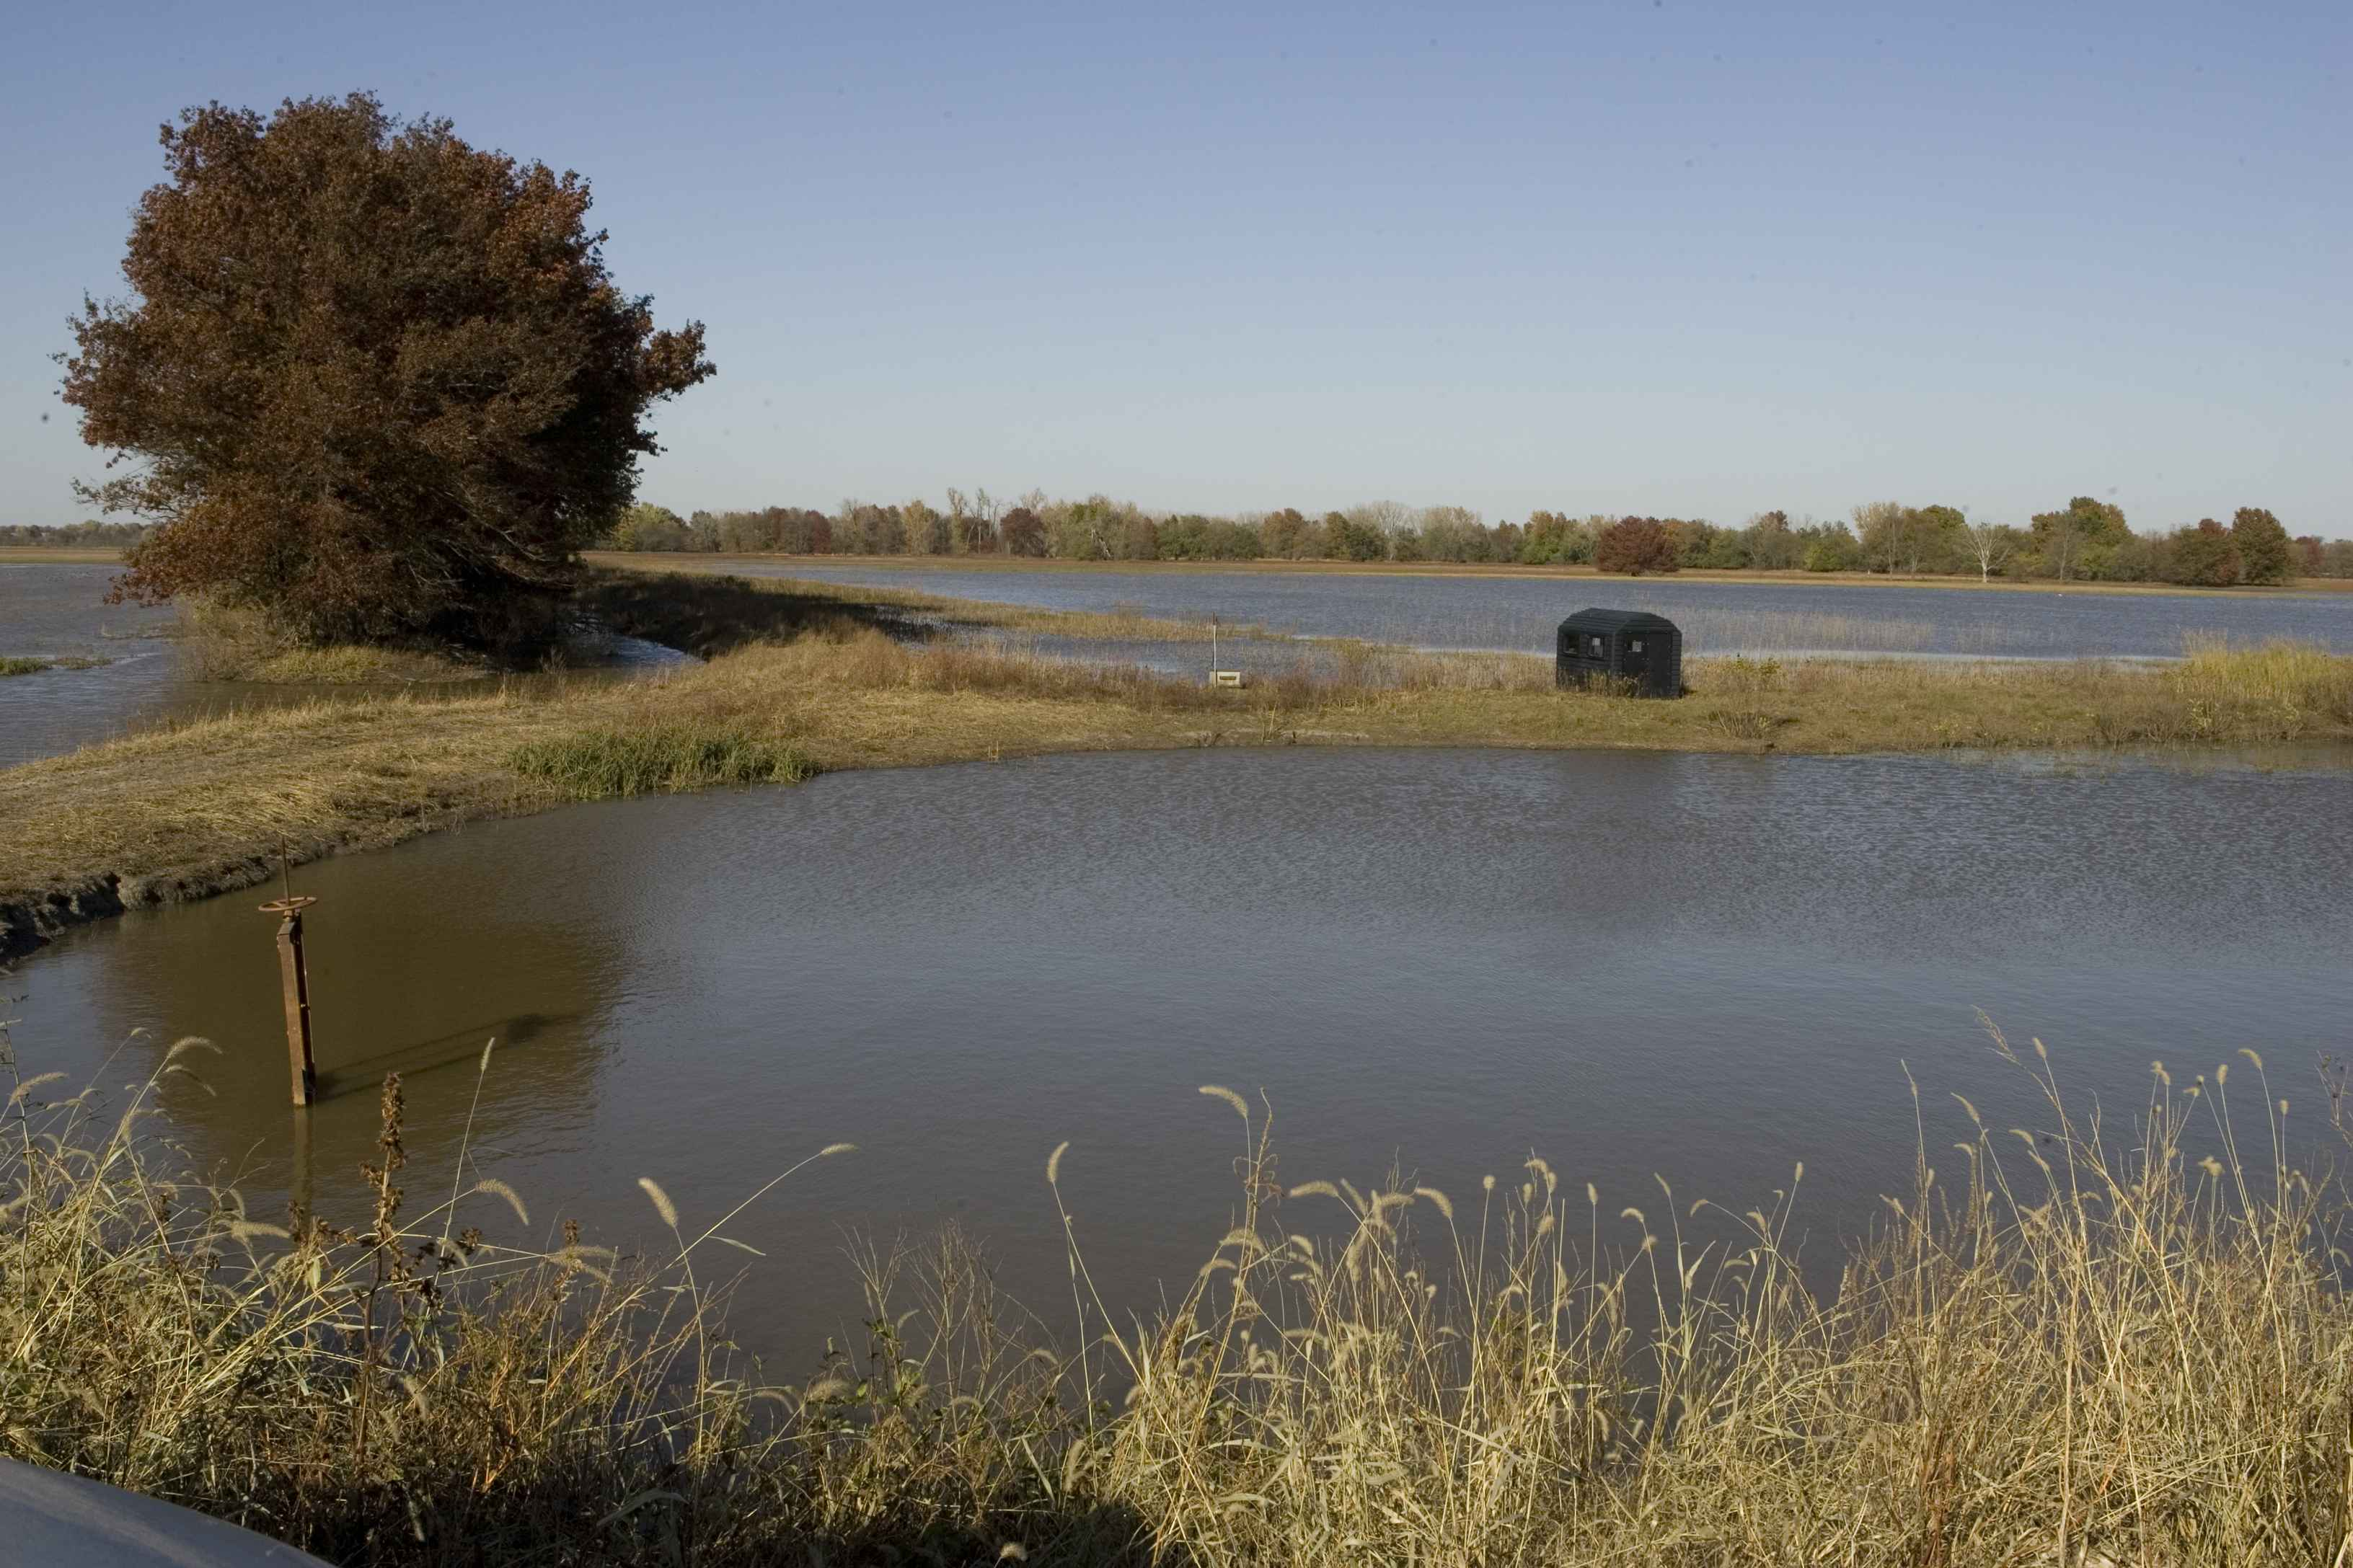 Free Picture Small Black Structure Narrow Ground Between Ponds Wildlife Observation